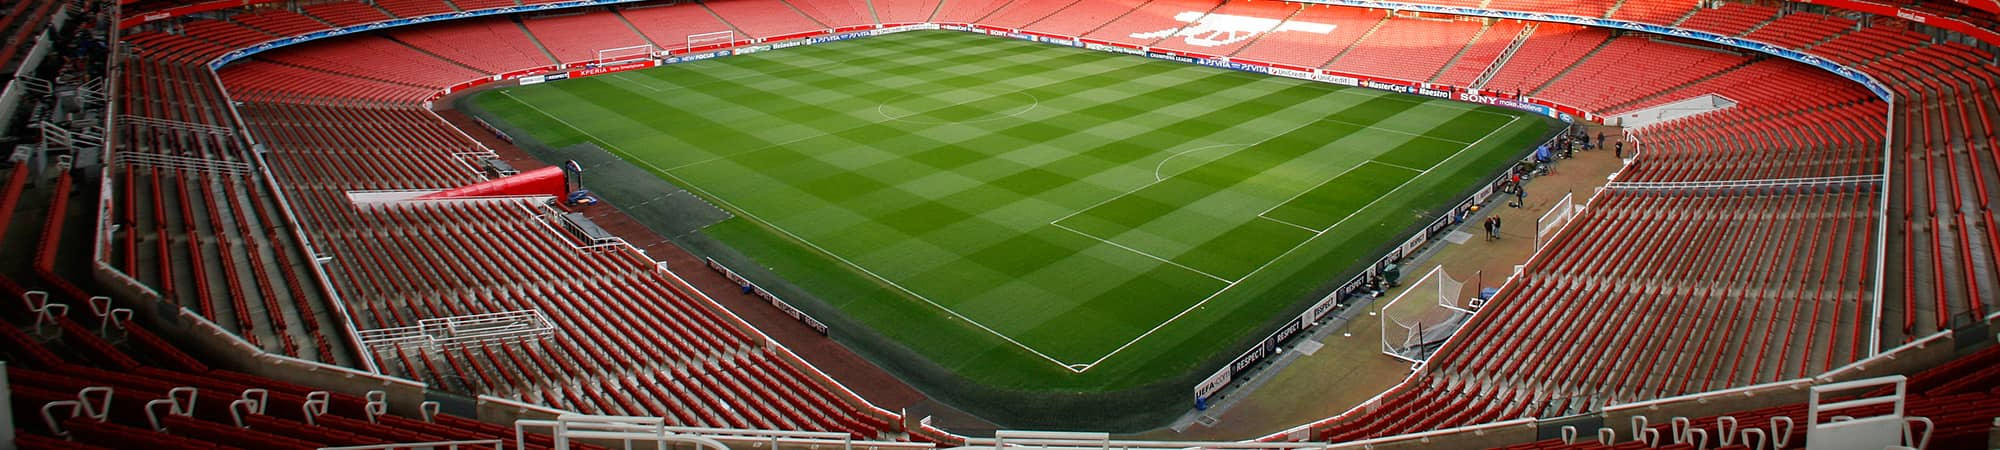 Emirates Stadium pitch